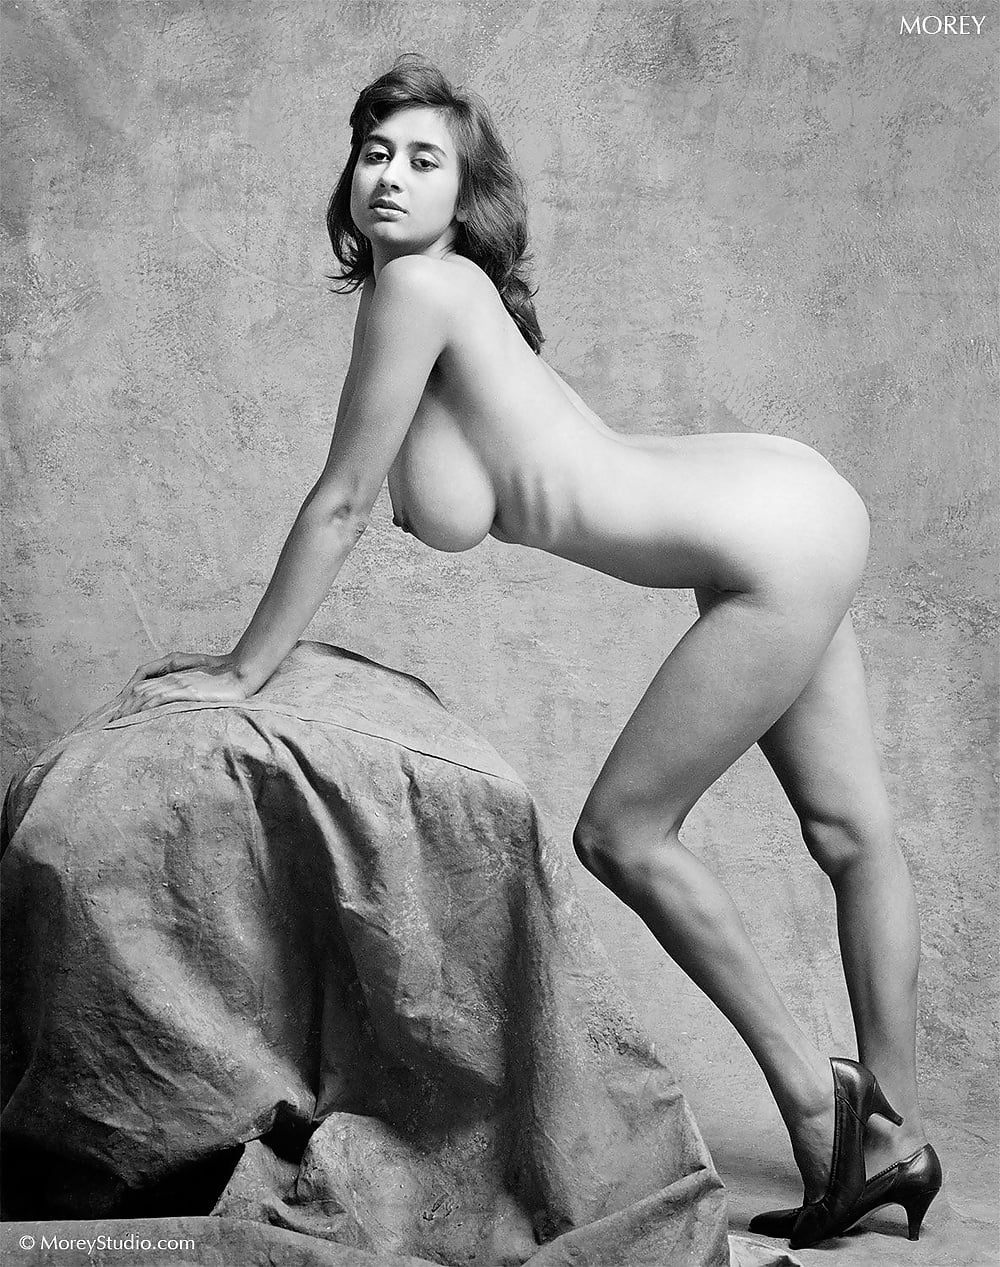 Graphic Nude Photography